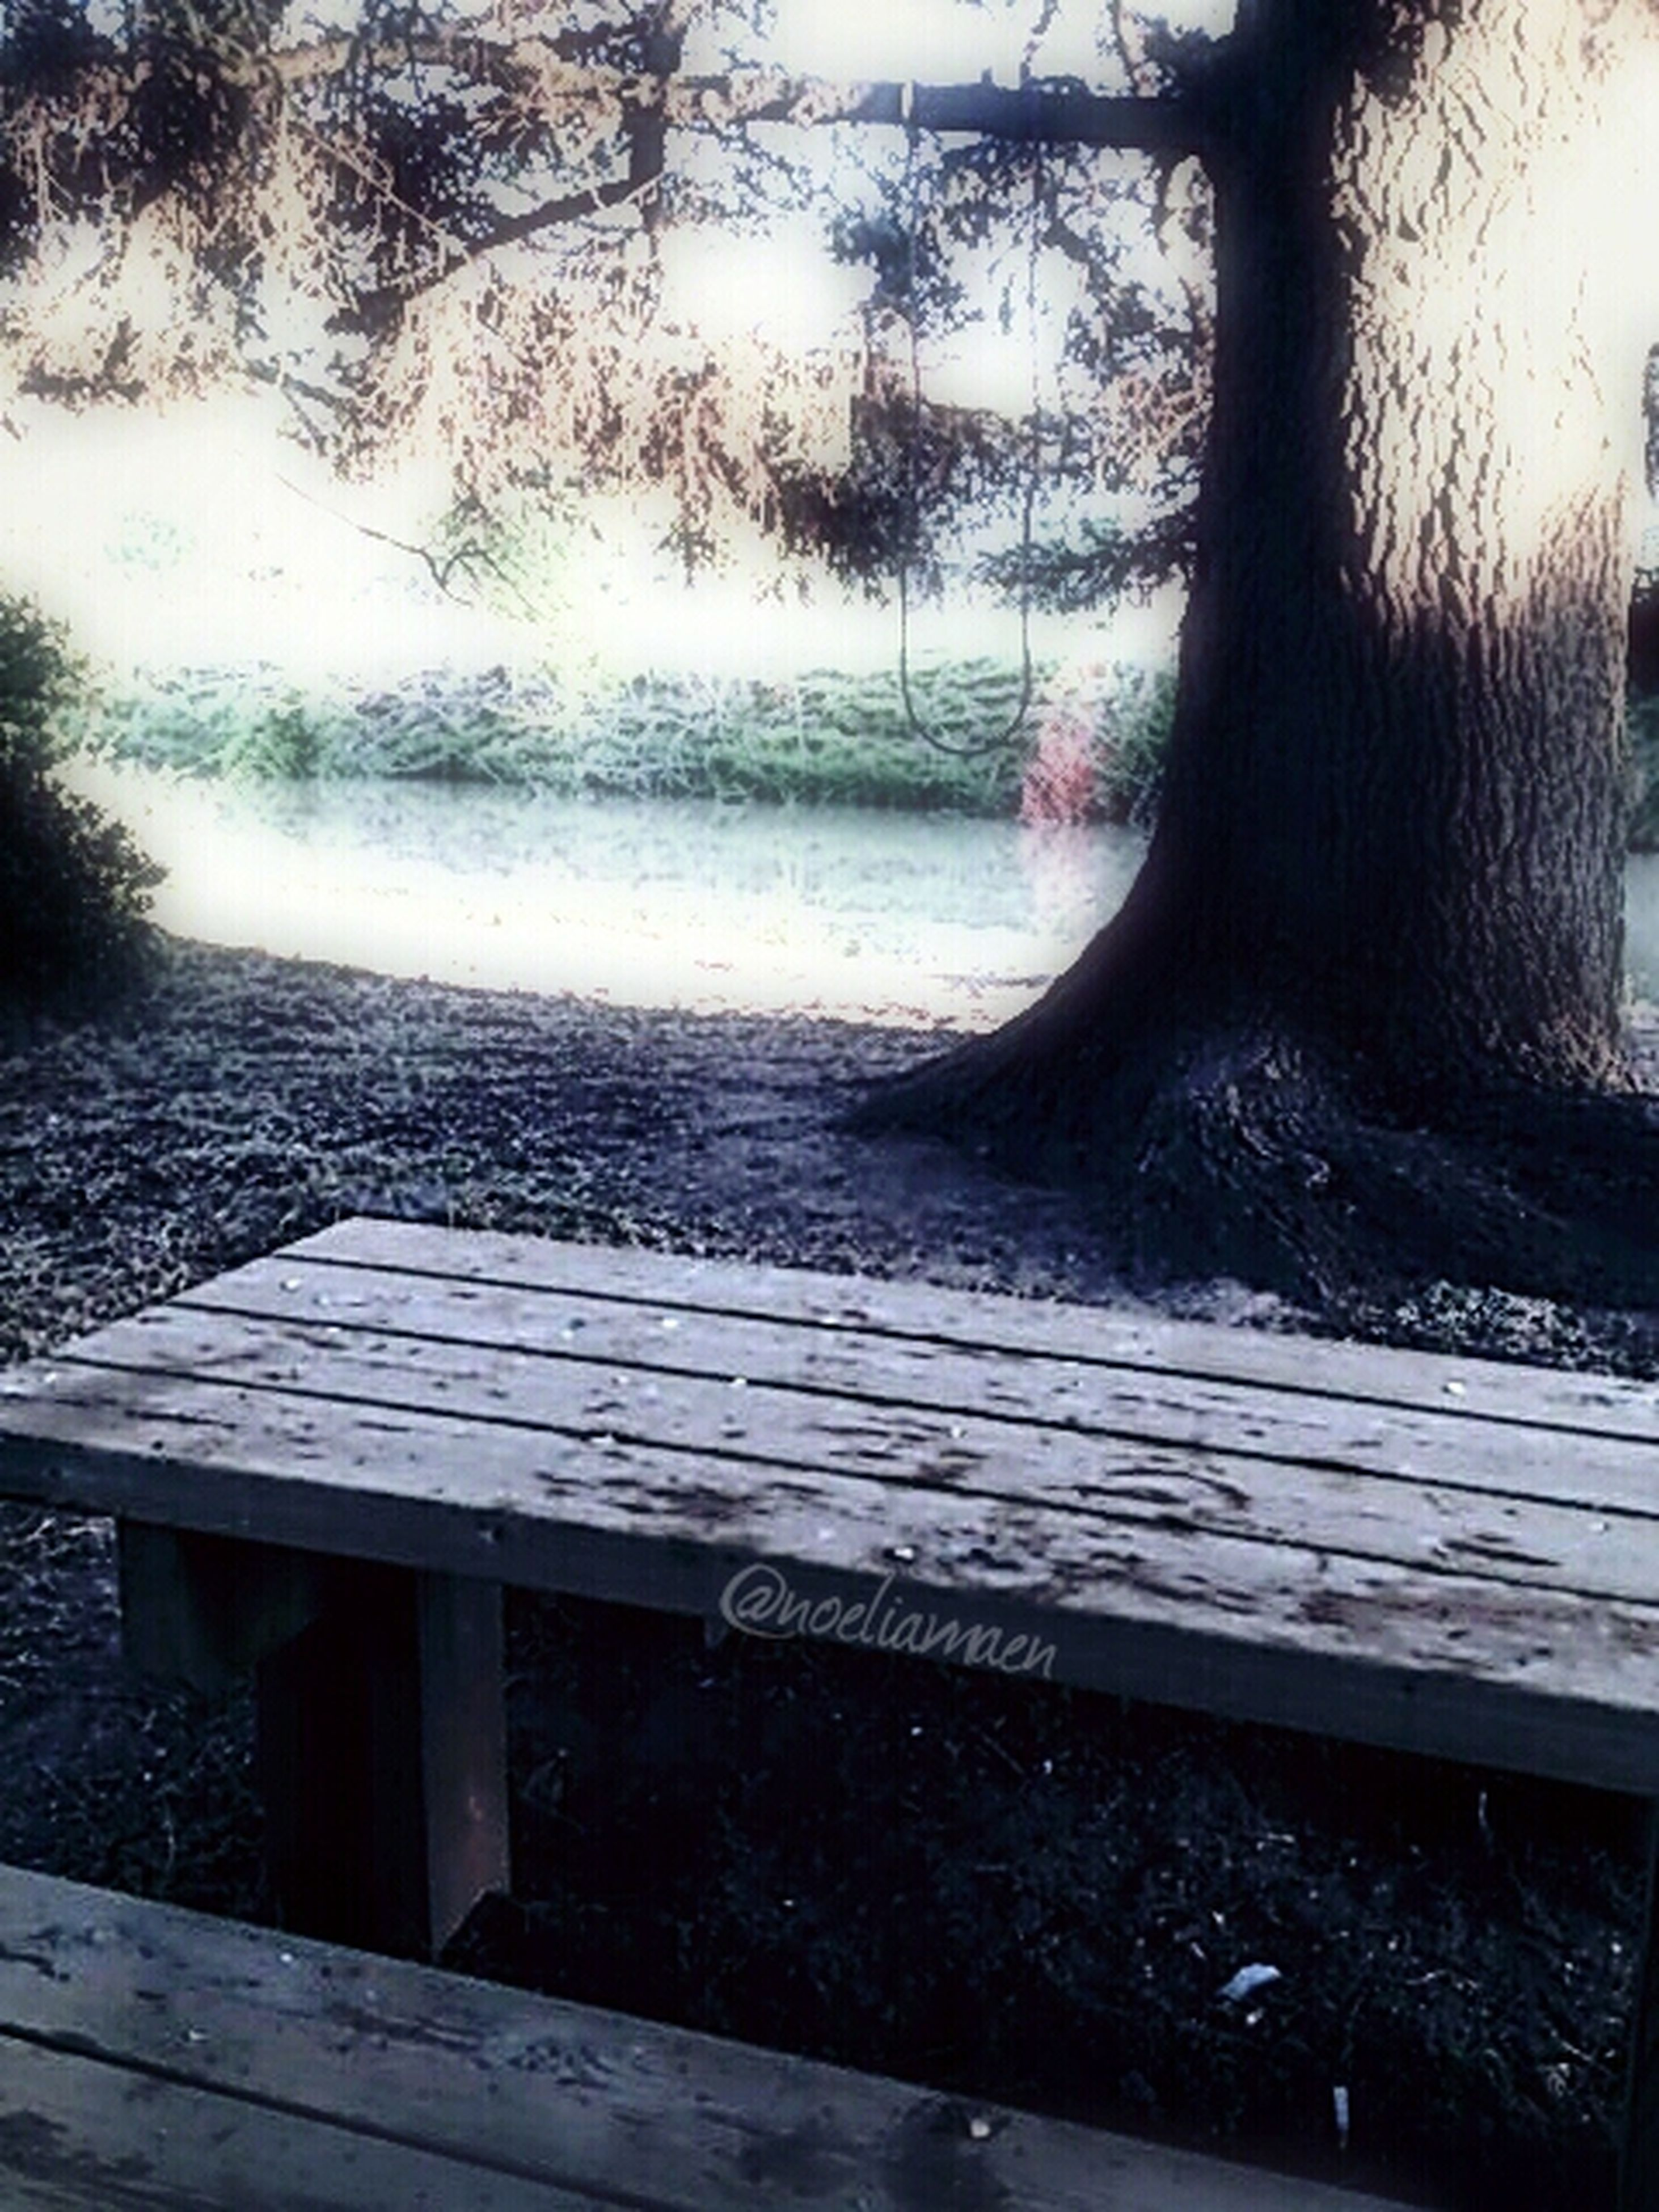 tree, wood - material, water, bench, day, nature, no people, wooden, lake, built structure, sky, tranquility, empty, wood, branch, outdoors, tree trunk, absence, reflection, table